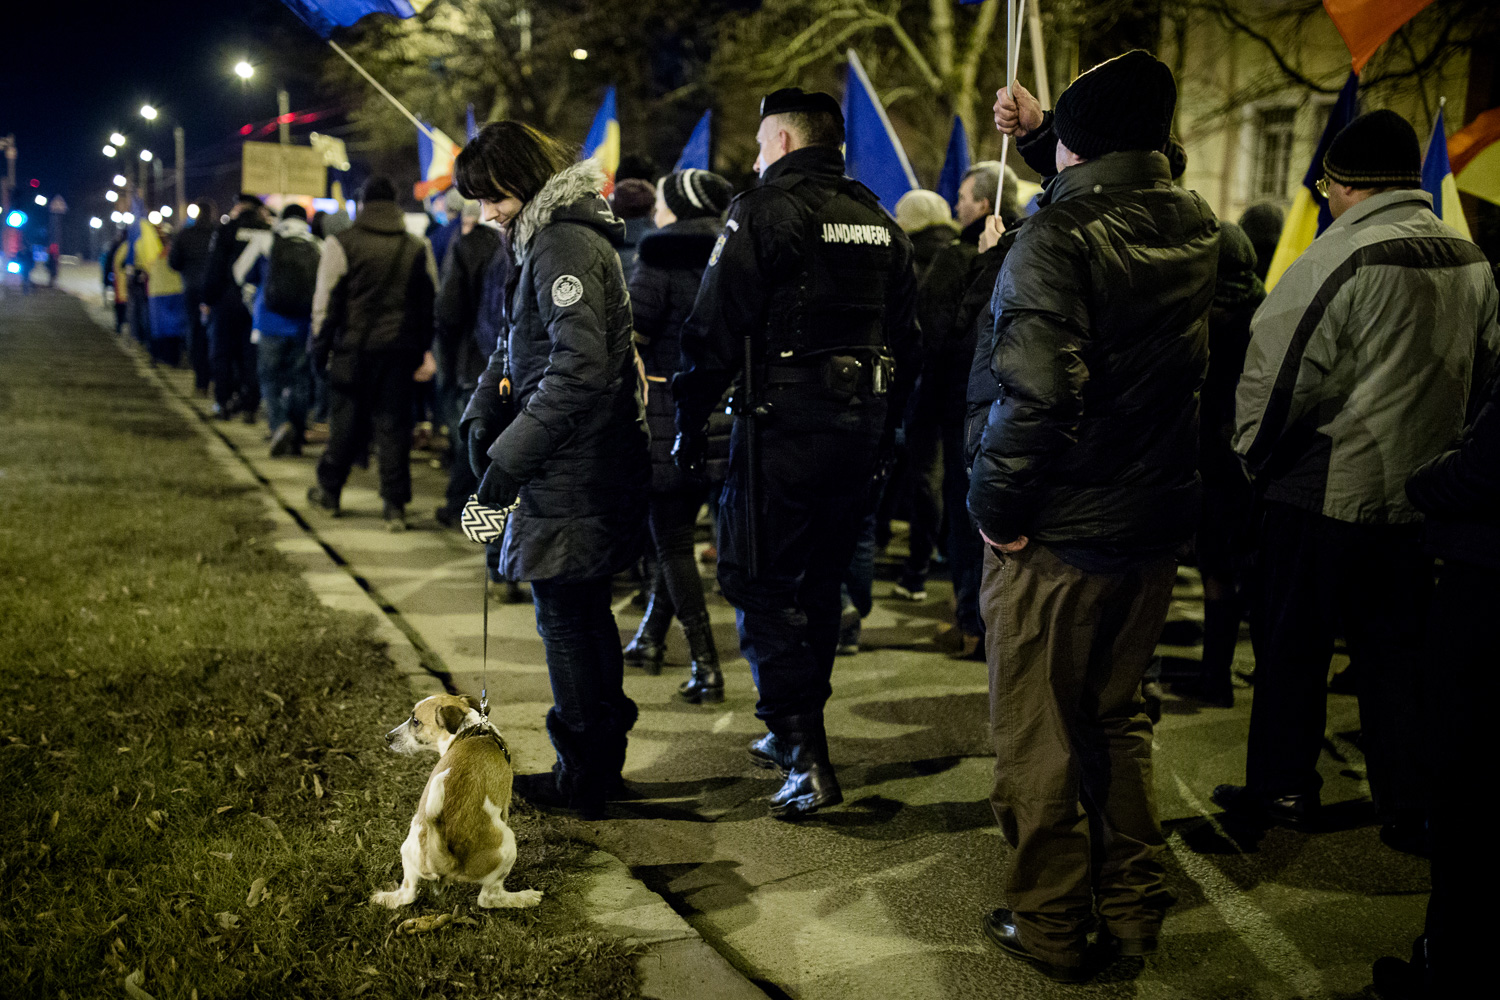 Dog taking a poop while protesters take to the streets in Timisoara, Romania